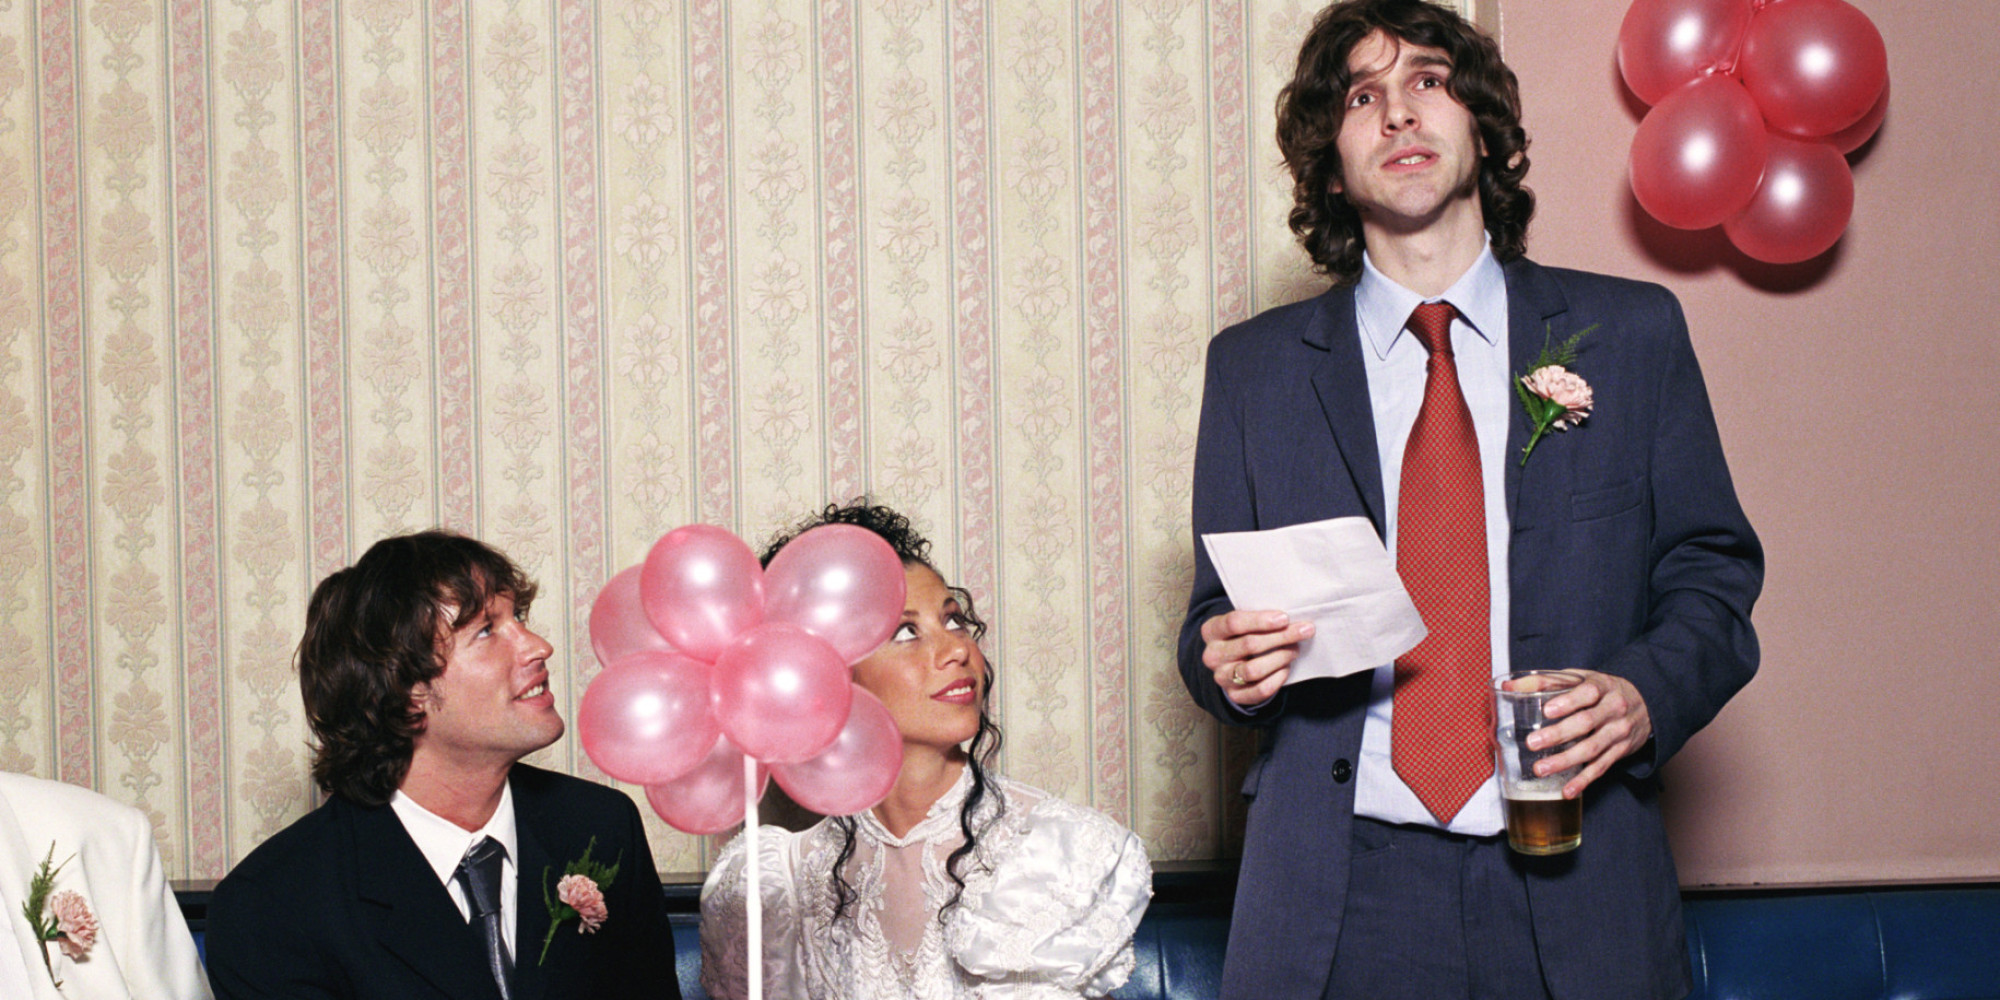 10 Common Wedding Sch Gaffes How To Avoid Them